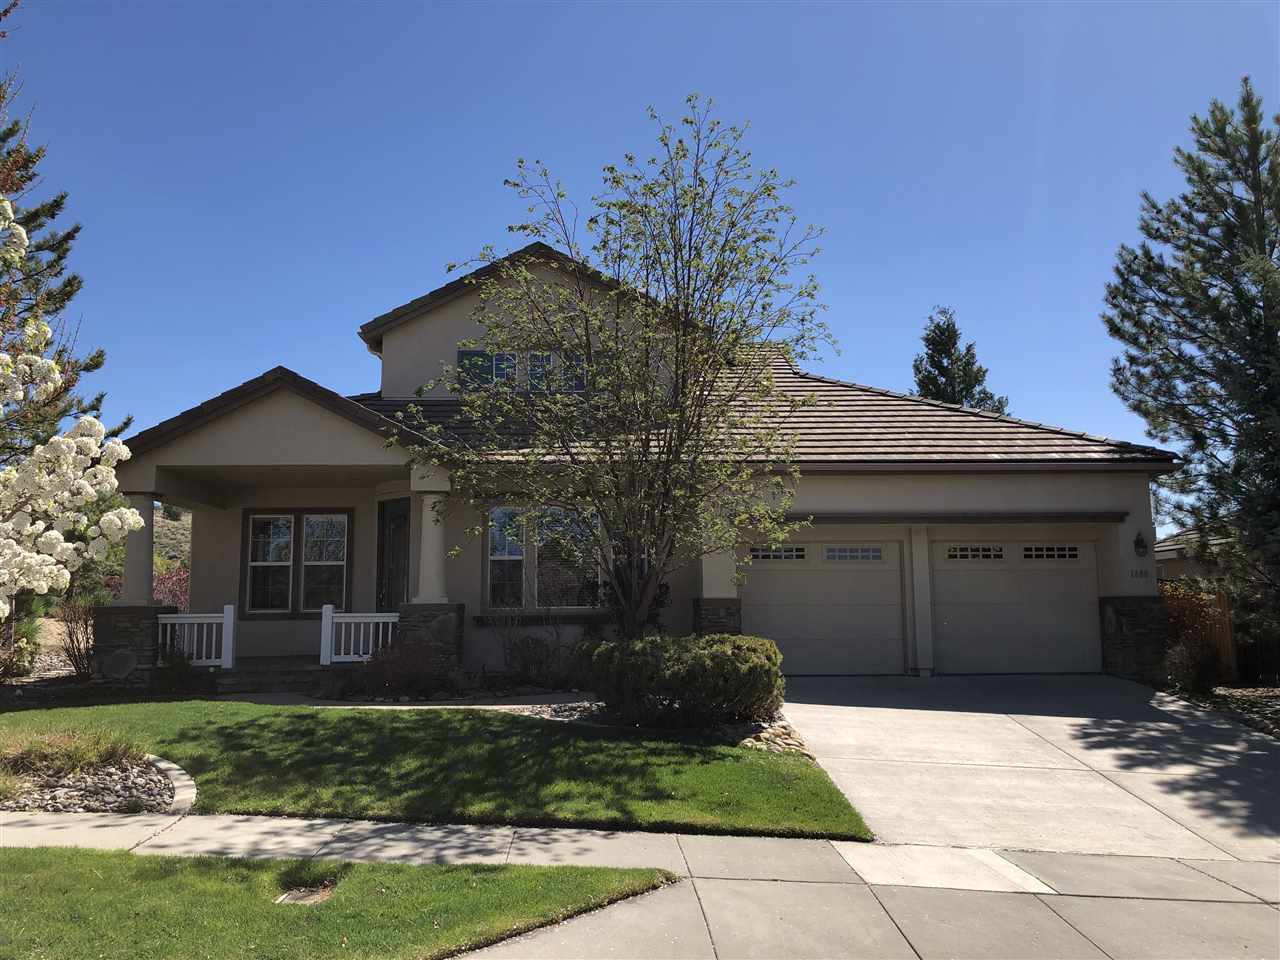 Single Family Home for Active at 1880 Morgan Pointe Circle 1880 Morgan Pointe Circle Reno, Nevada 89523 United States